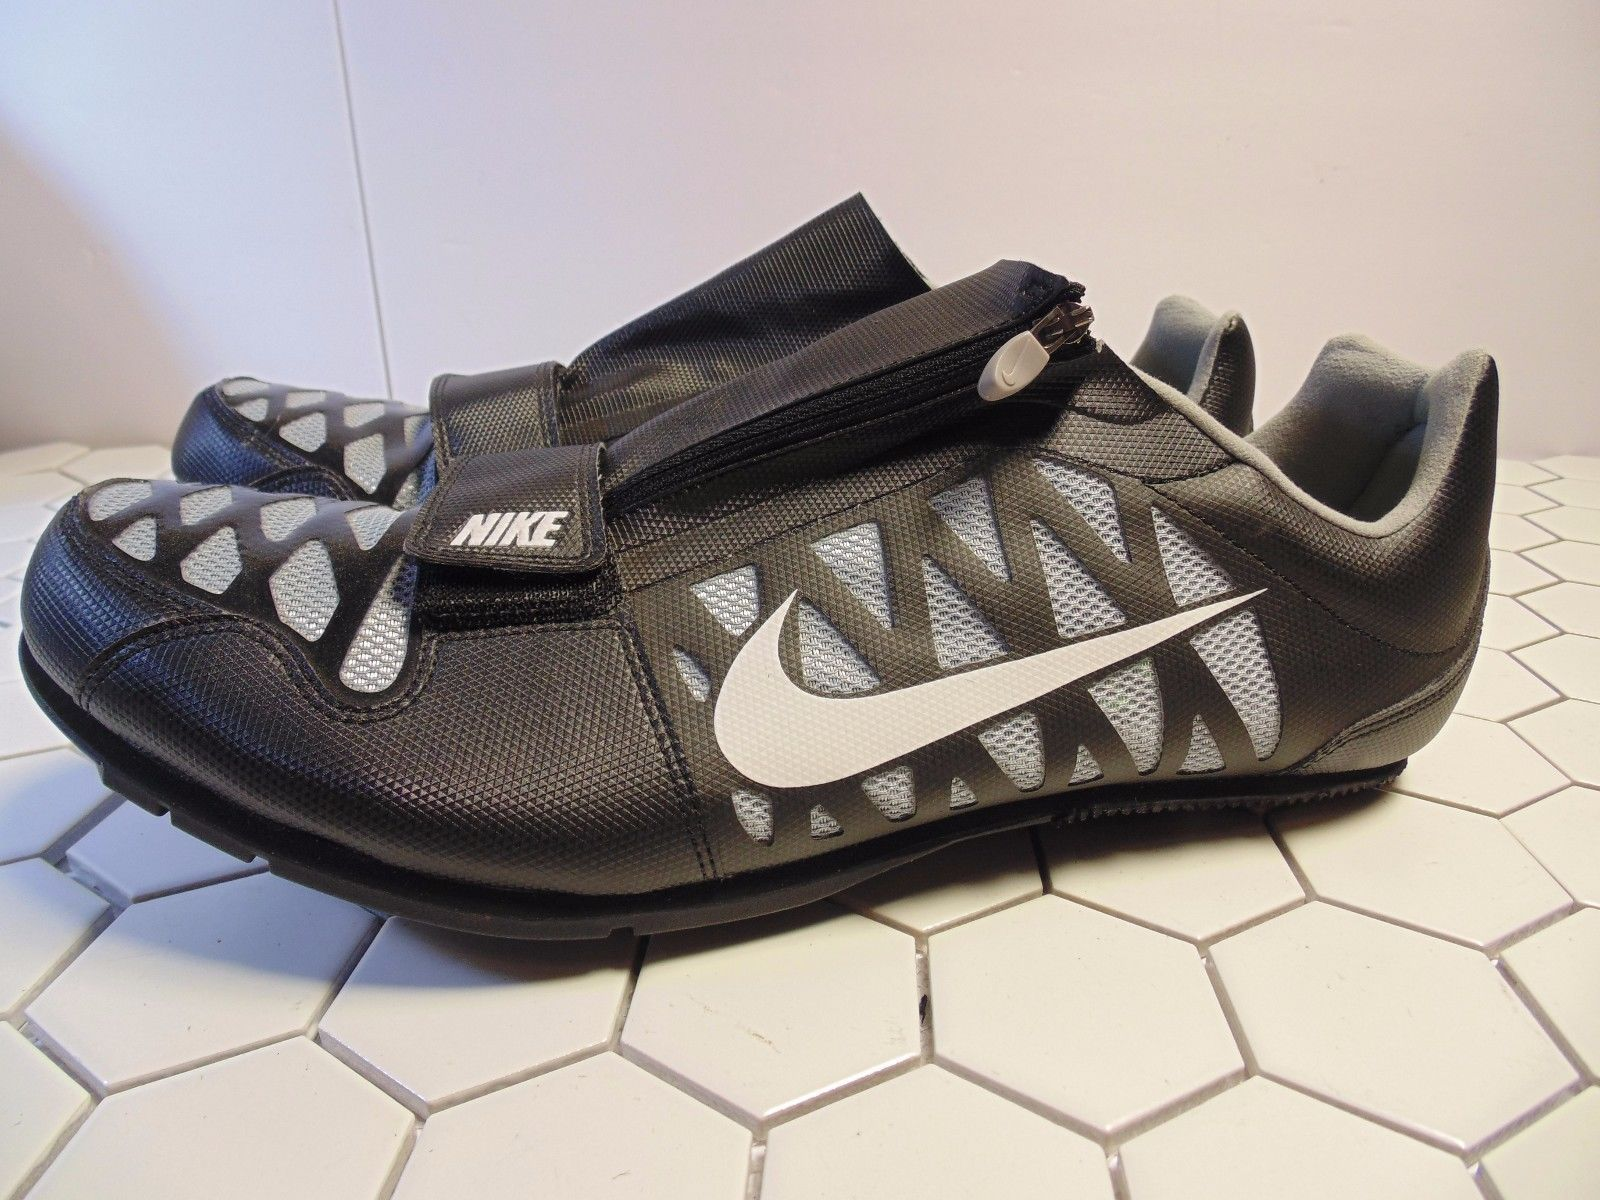 sports shoes cede8 a50bf S l1600. S l1600. Previous. Mens Nike Zoom LJ 4 Long Jump Pole Vault Cleats  Spikes  415339-002 · Mens Nike Zoom ...